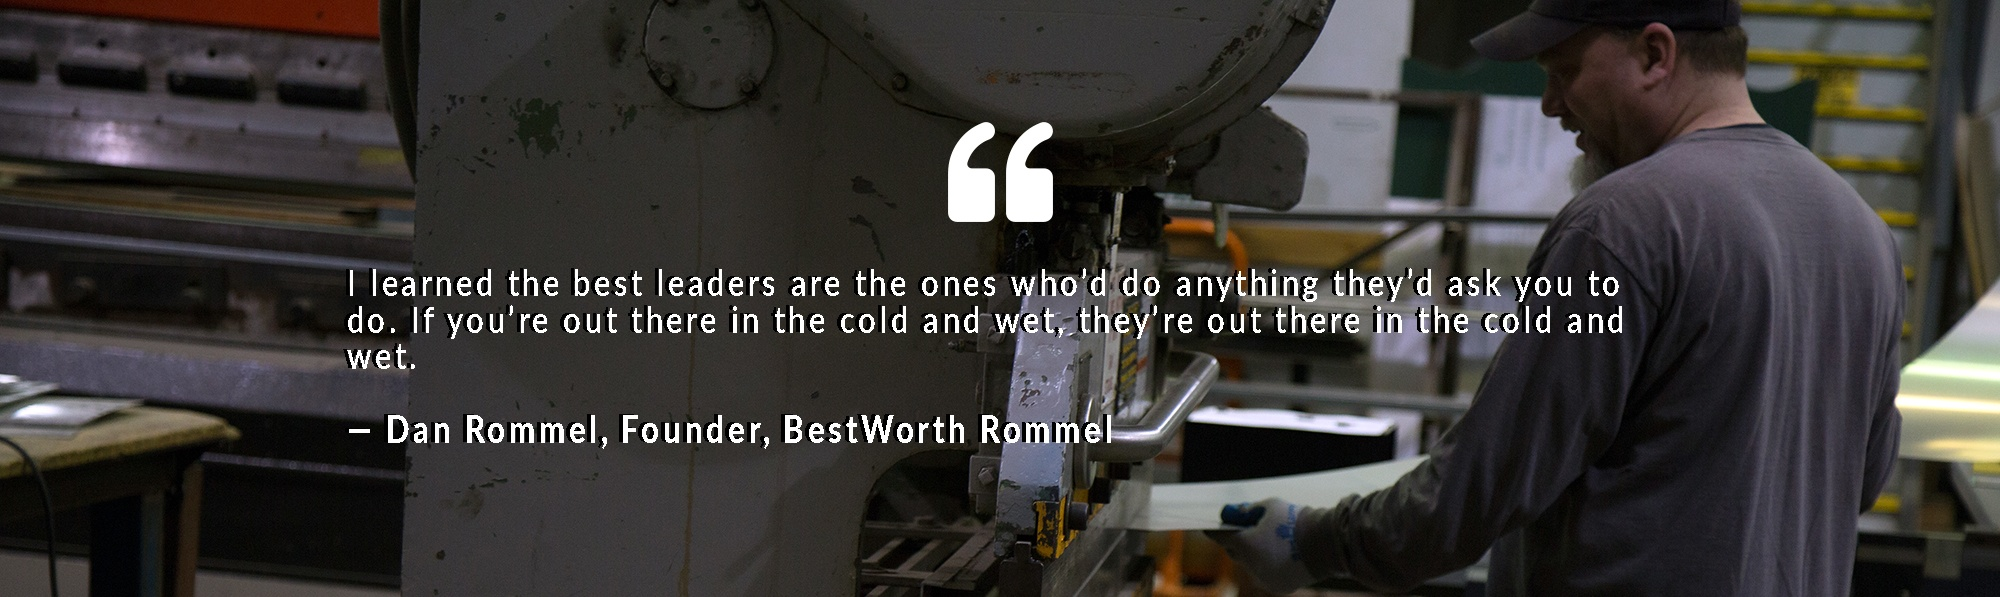 The best leaders